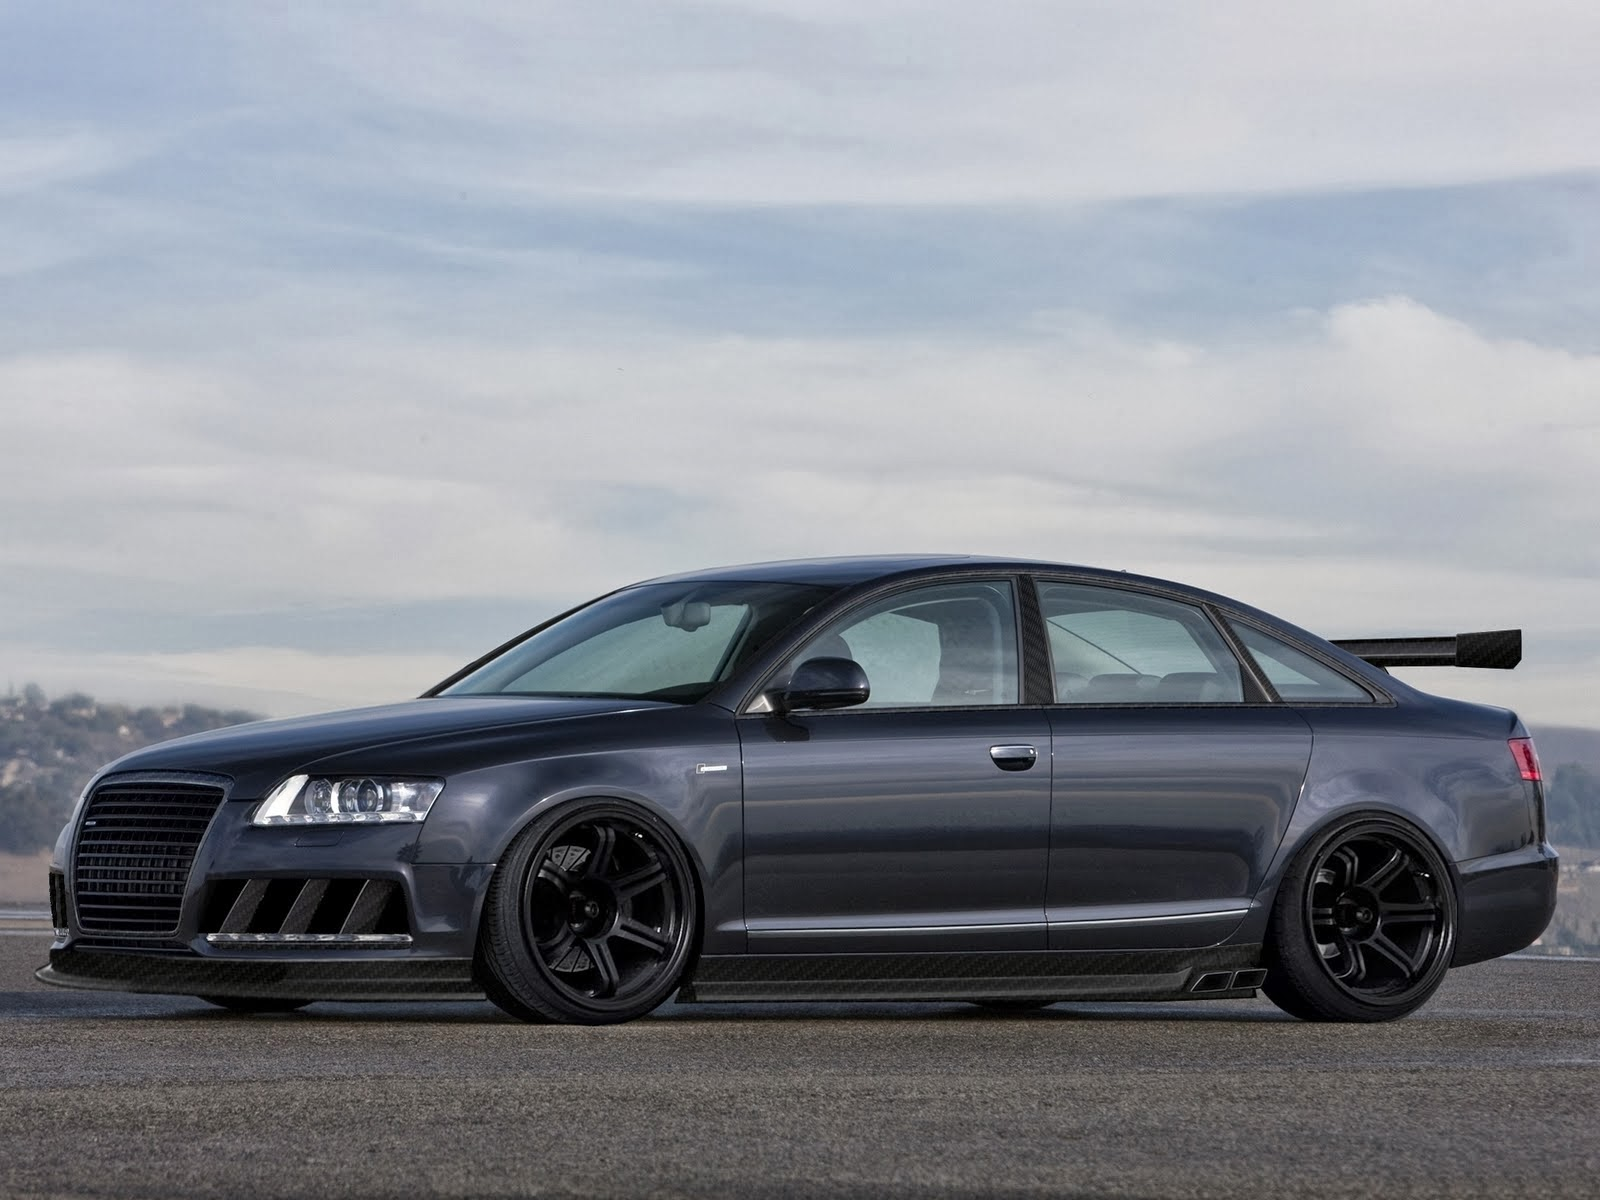 2001 Audi A6 Tuning Up